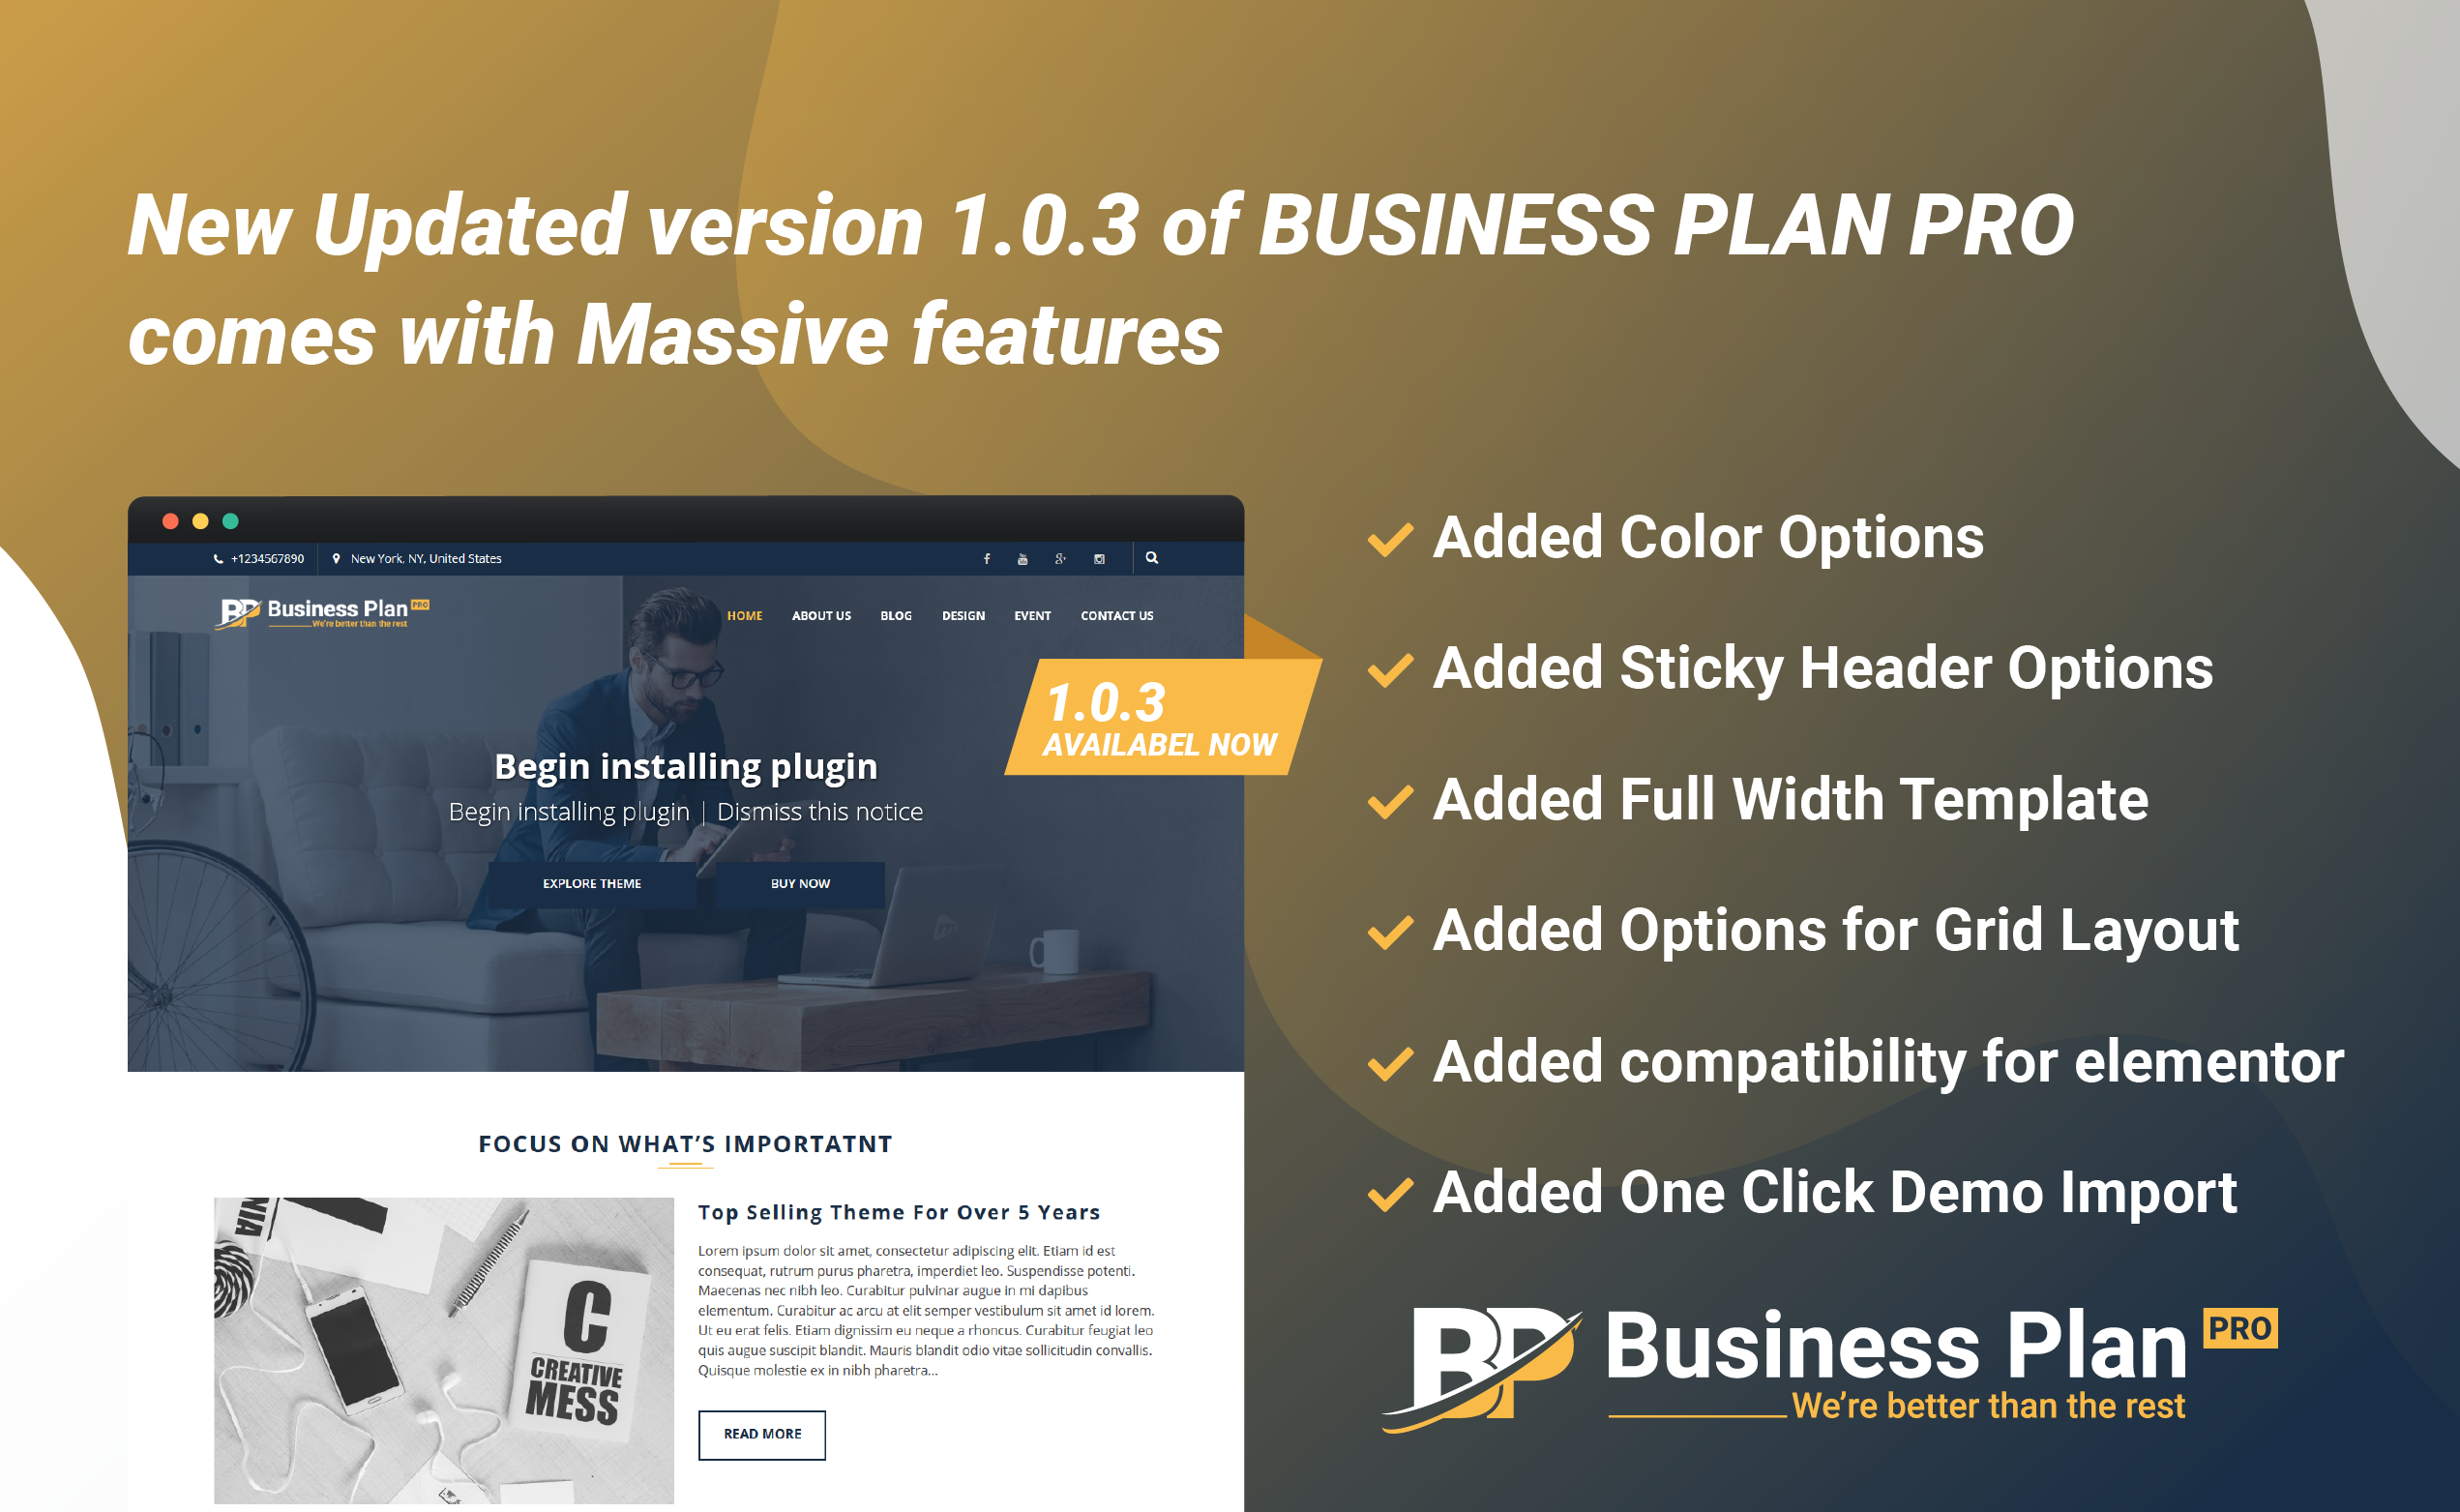 Business Plan Pro 1.0.3